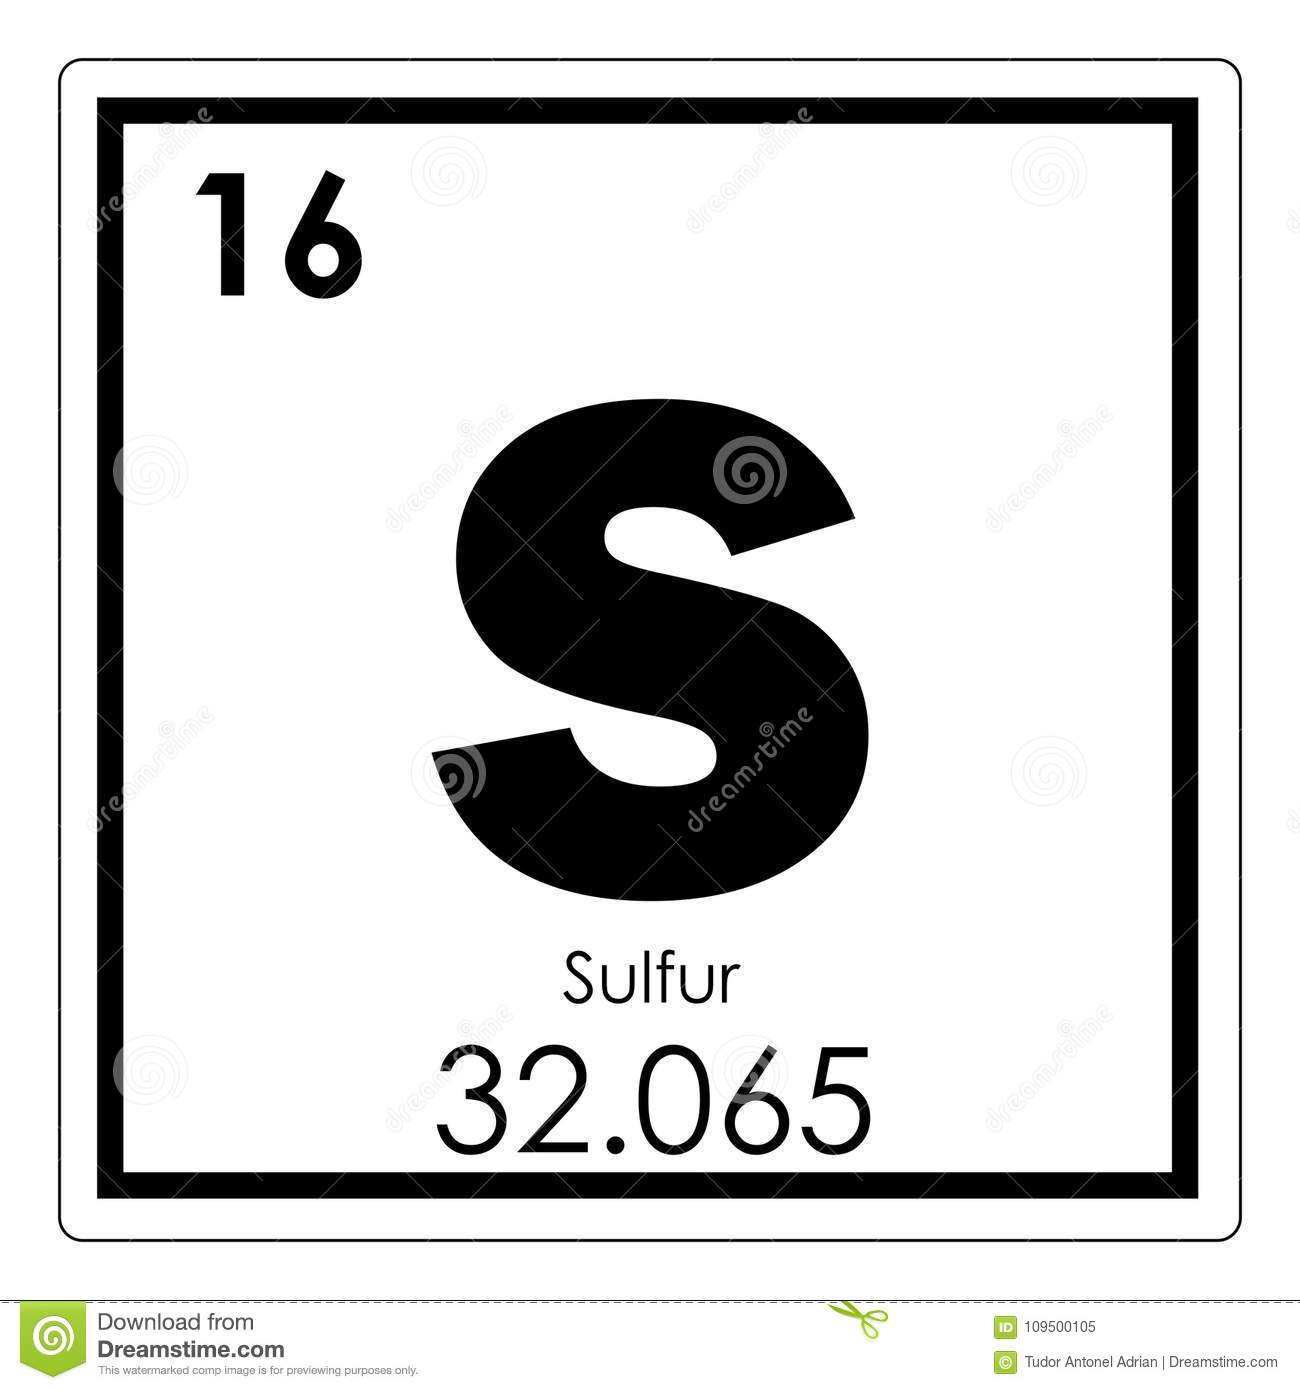 Sulfur chemical element stock illustration illustration of symbol sulfur chemical element symbol chemistry buycottarizona Image collections